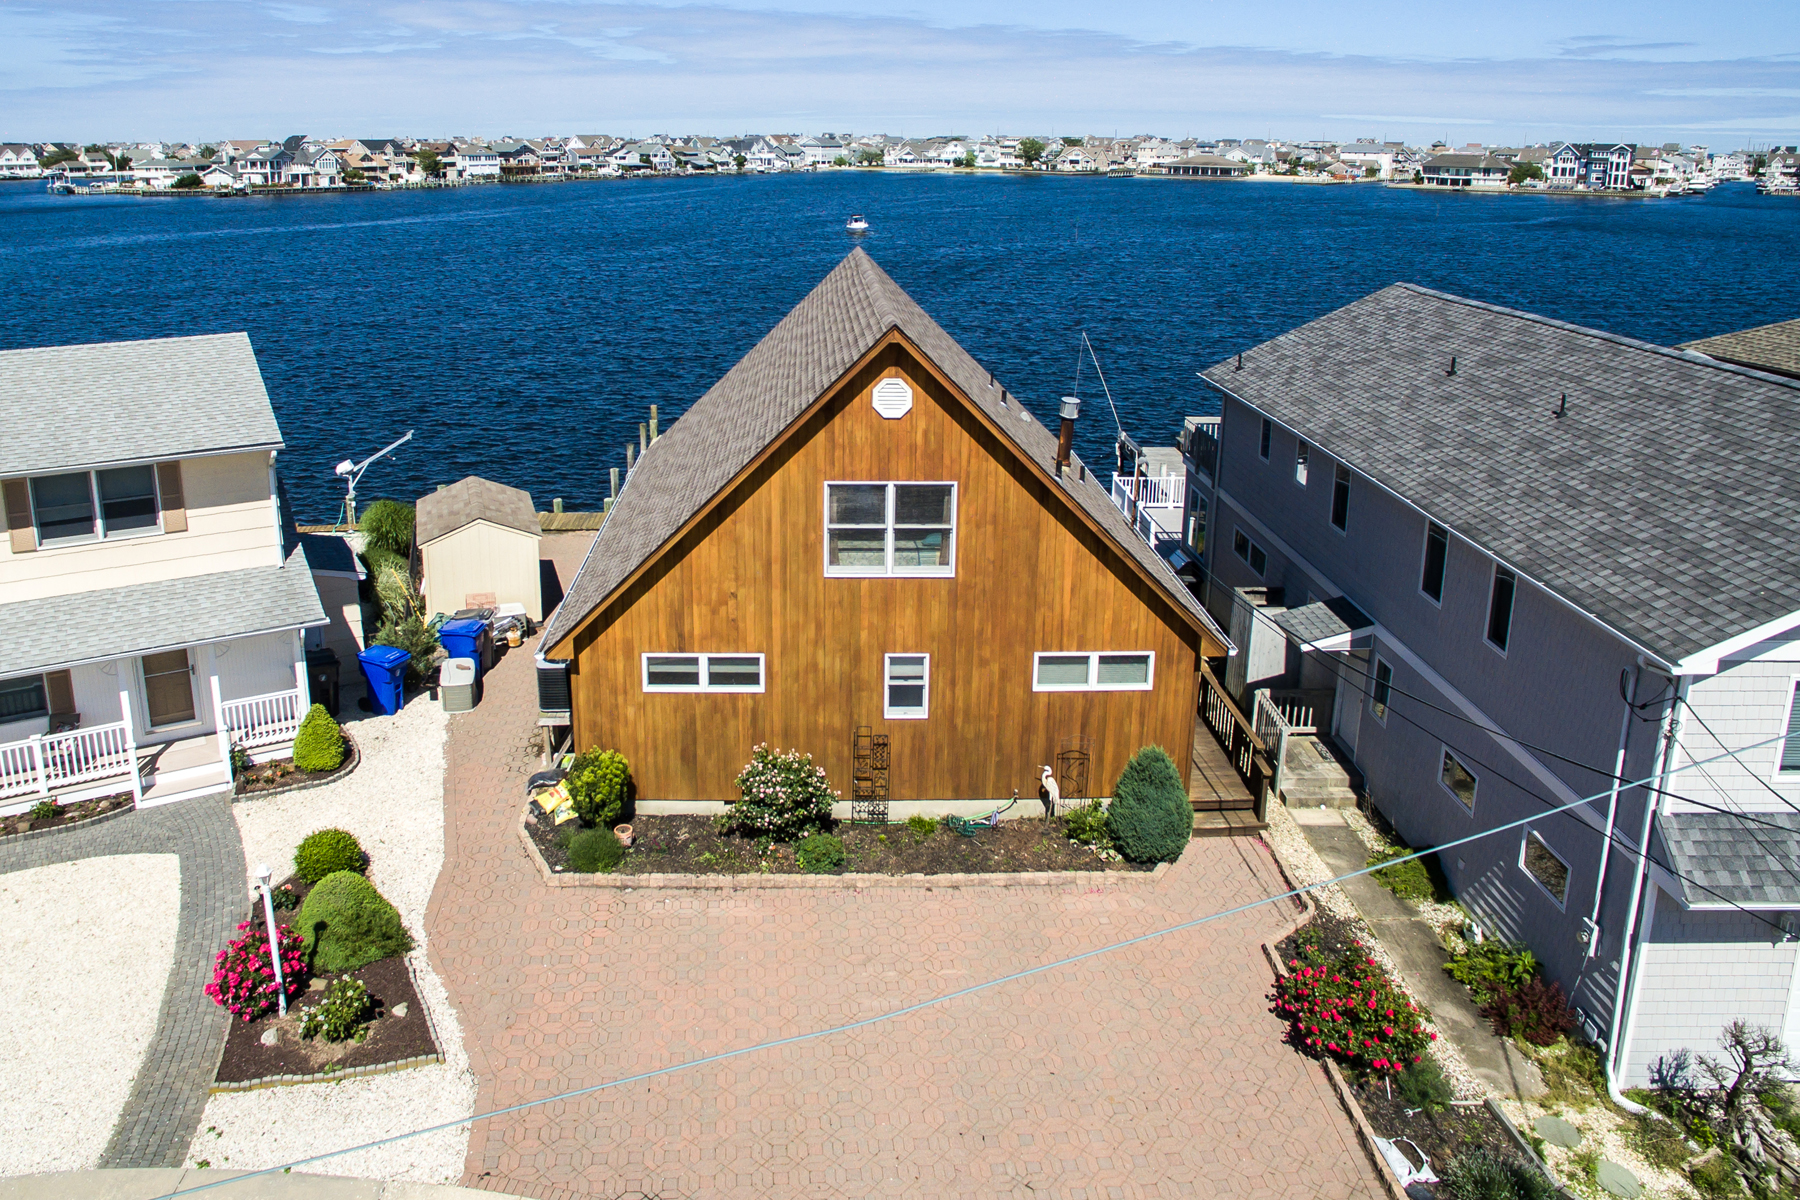 Maison unifamiliale pour l Vente à A-Frame Style Home With Panoramic Open Bay Views 468 Tamiami Drive Lavallette, New Jersey, 08735 États-Unis